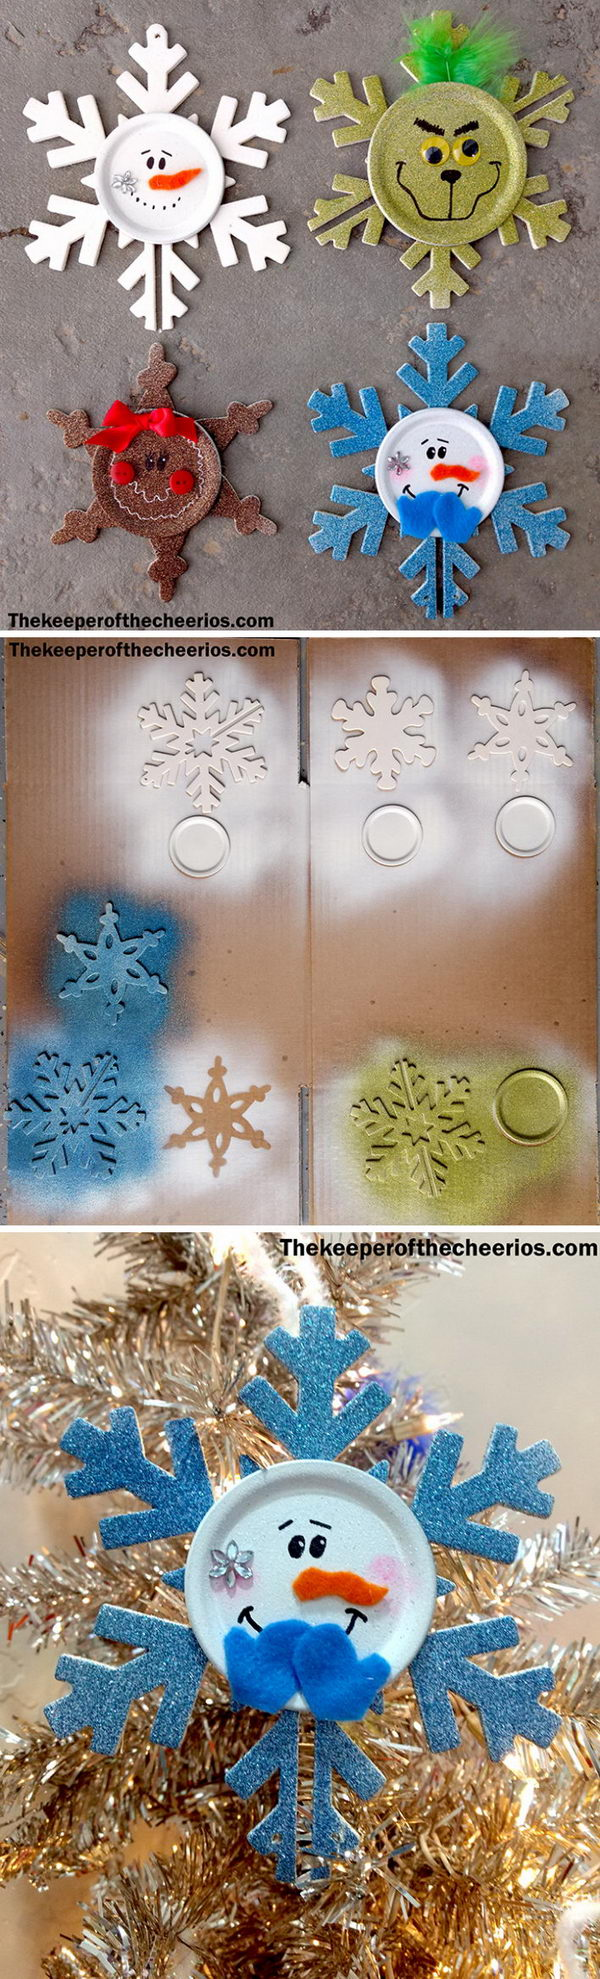 Snowflake Christmas Ornaments.